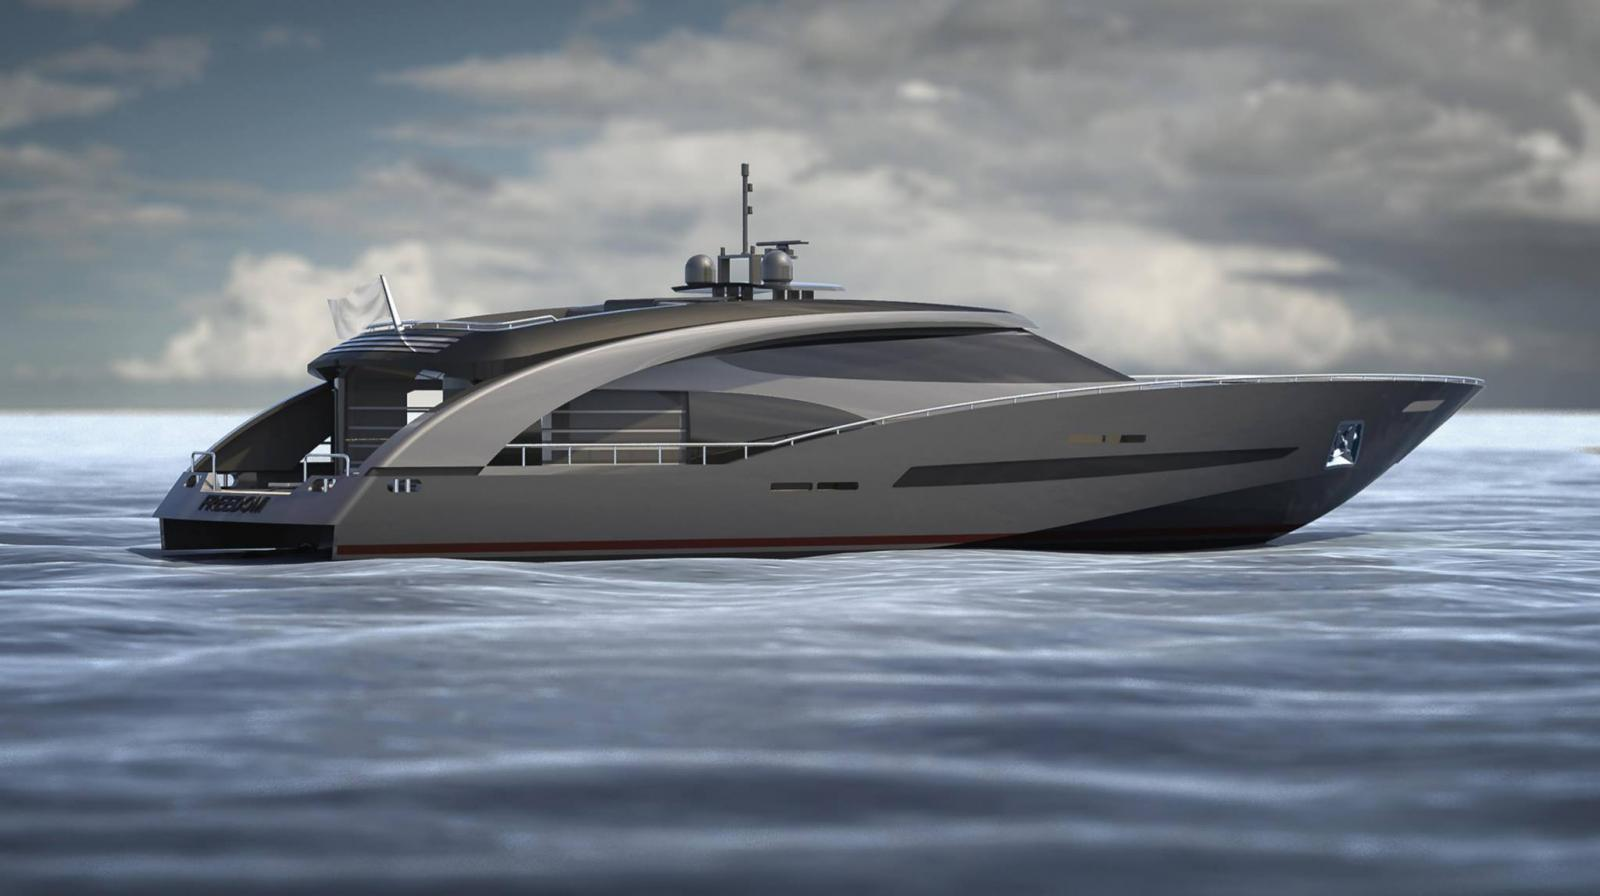 Freedom Cerri Cantiere Navali Yacht AFT View